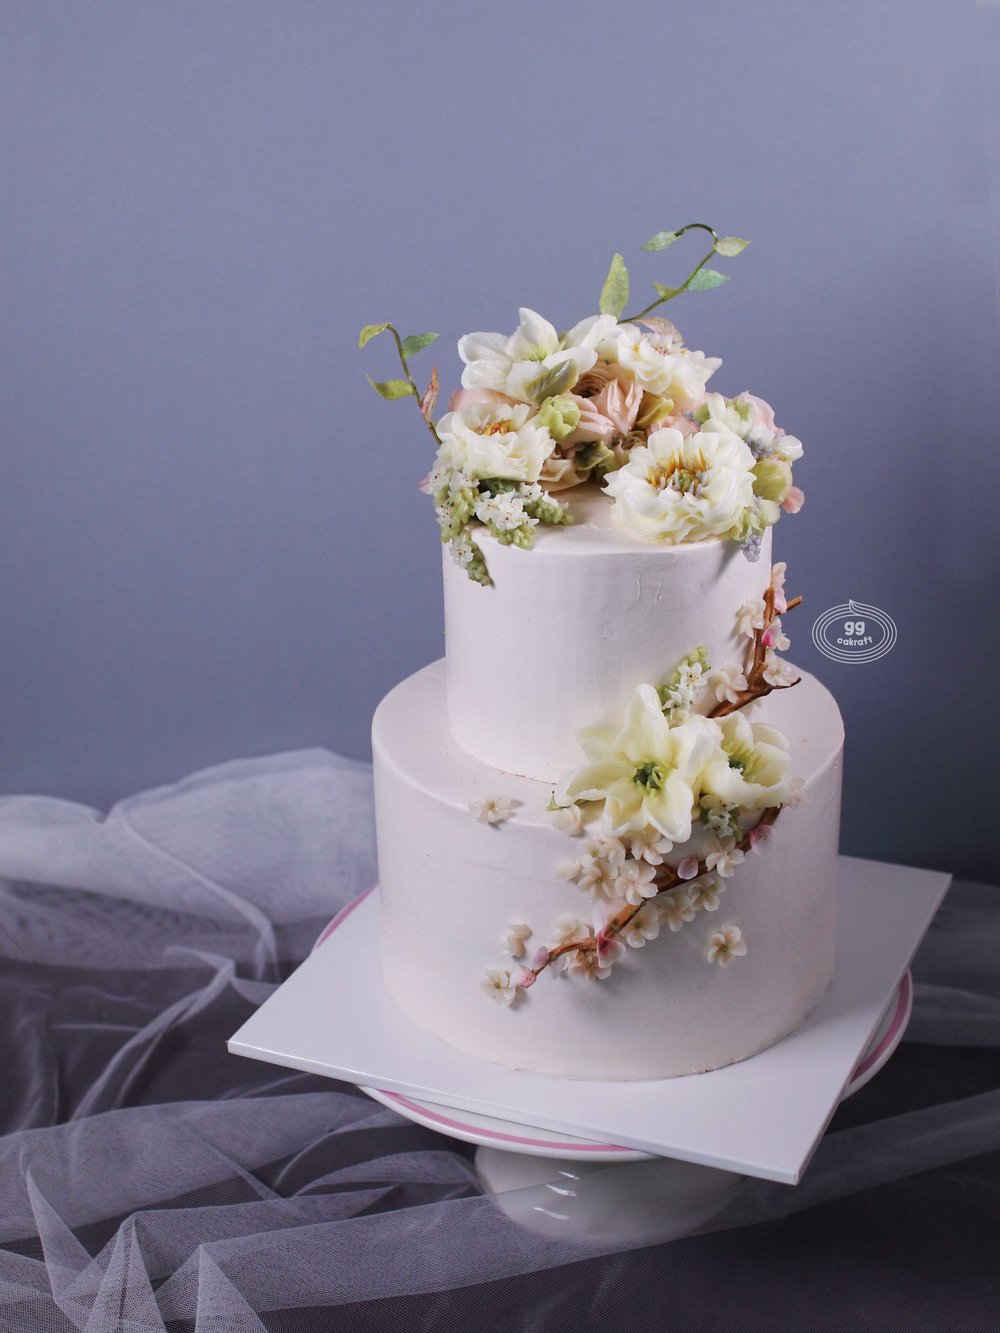 Day 2. Haute Couture Wedding Cake (dummy + real cake)   - Flower piping : Opened Peony, Ranunculus, Lily, Cherry Blossom, 3D Branch.  - The images are for reference ONLY